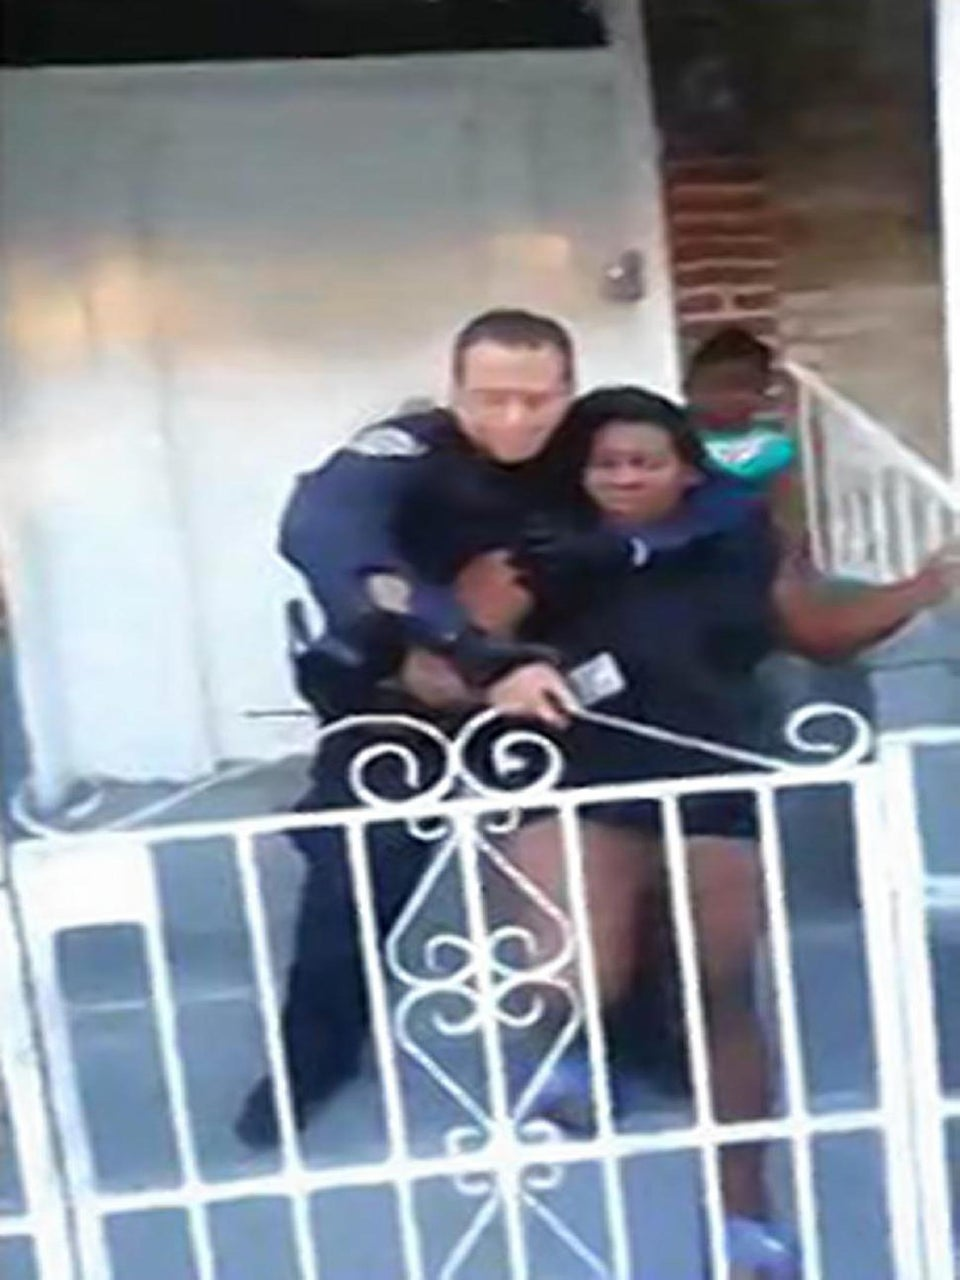 NYPD Cop Allegedly Puts Pregnant Woman in Chokehold